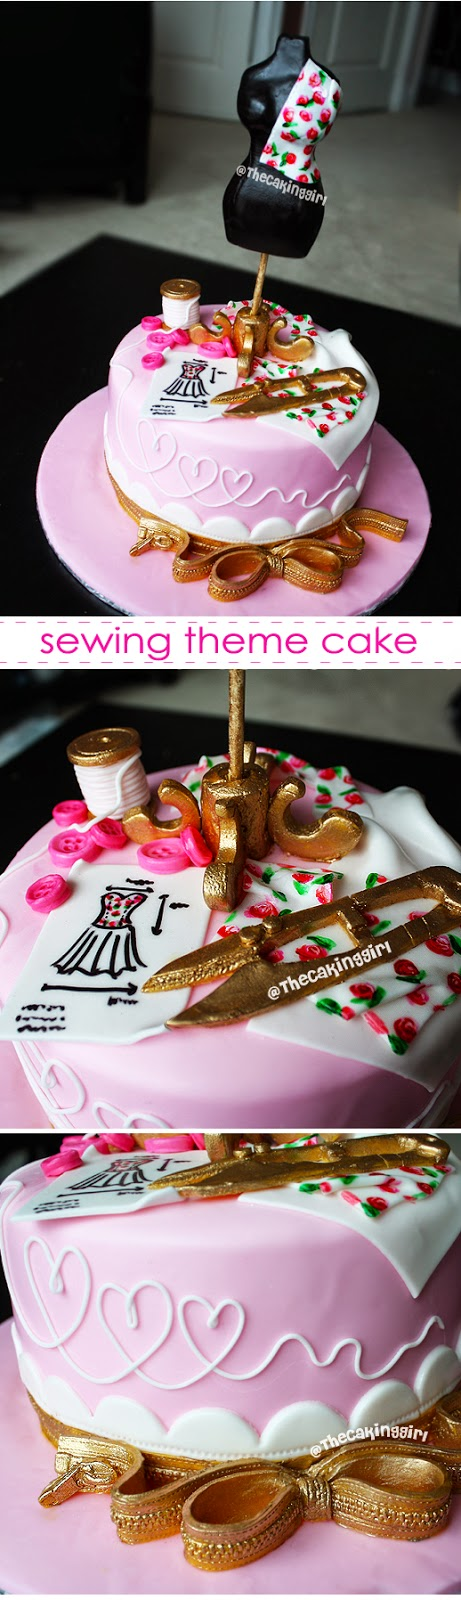 pretty sewing theme cake